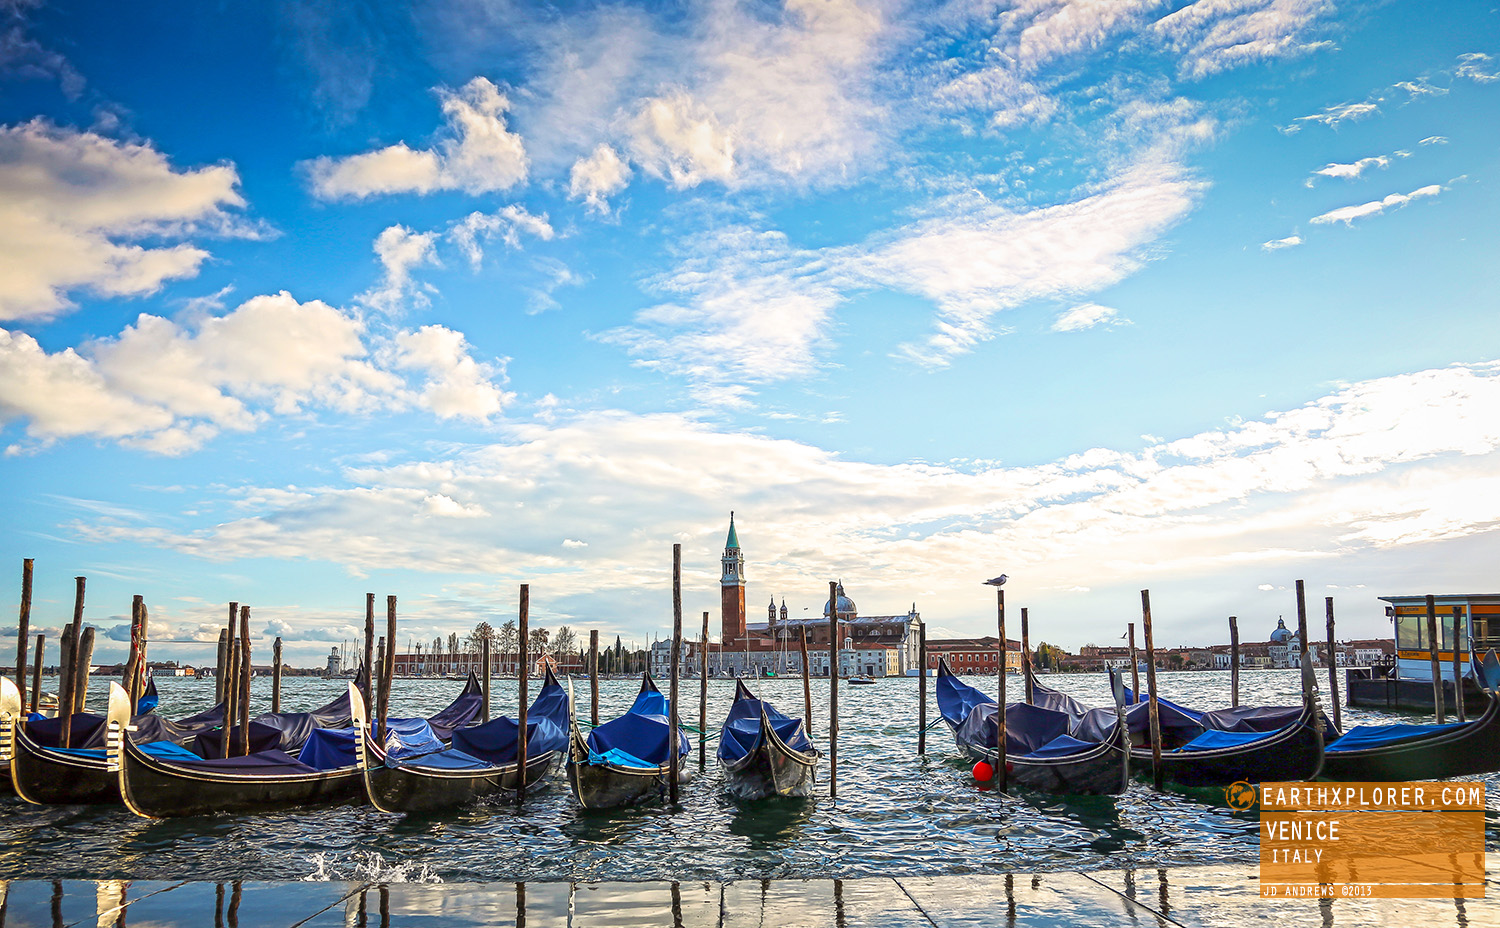 Gondolas are handmade using 8 different types of wood (fir, oak, cherry, walnut, elm, mahogany, larch & lime) and are composed of 280 pieces.